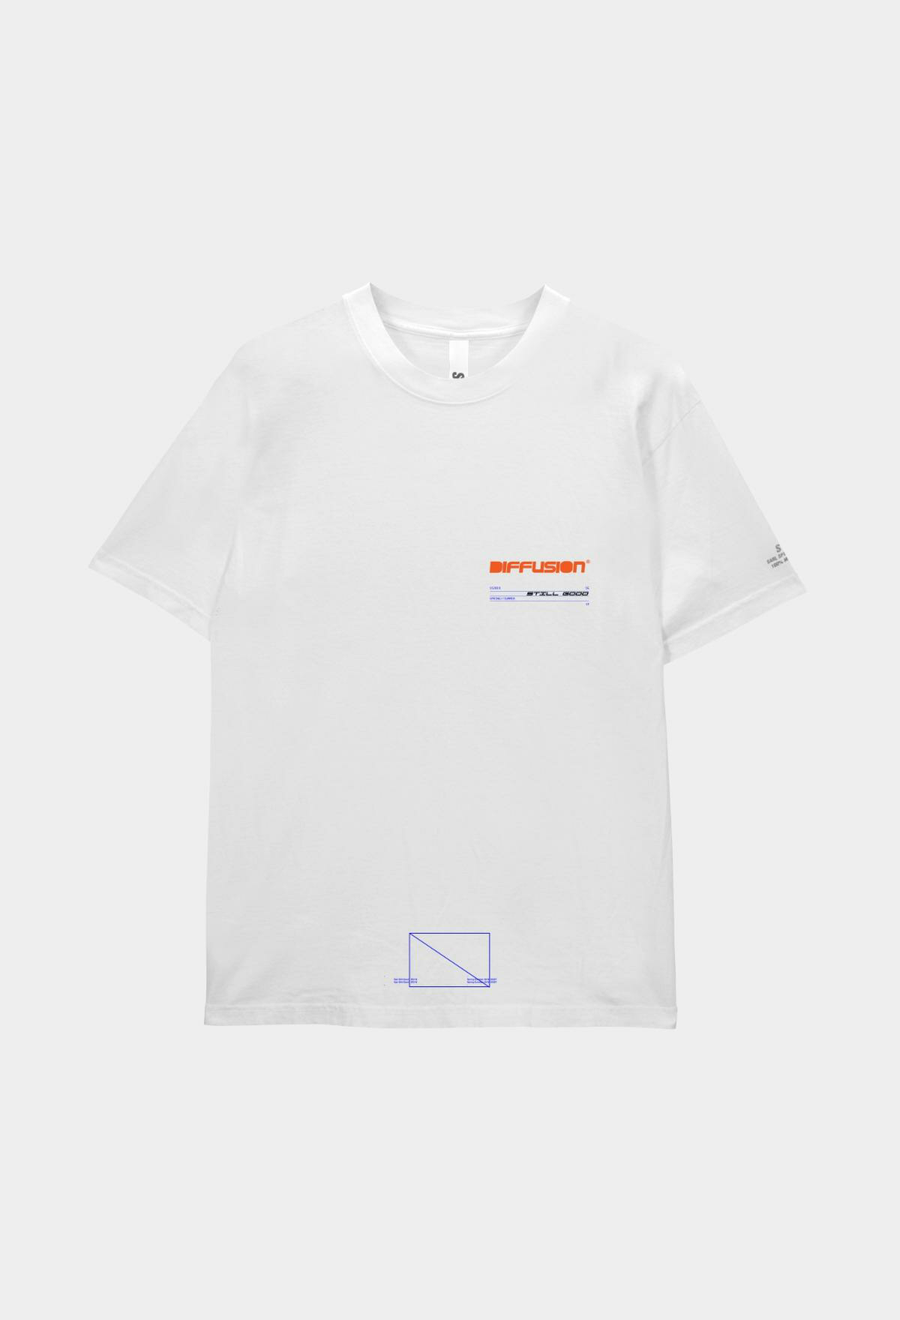 Diffusion Tee White / XS | Still Good